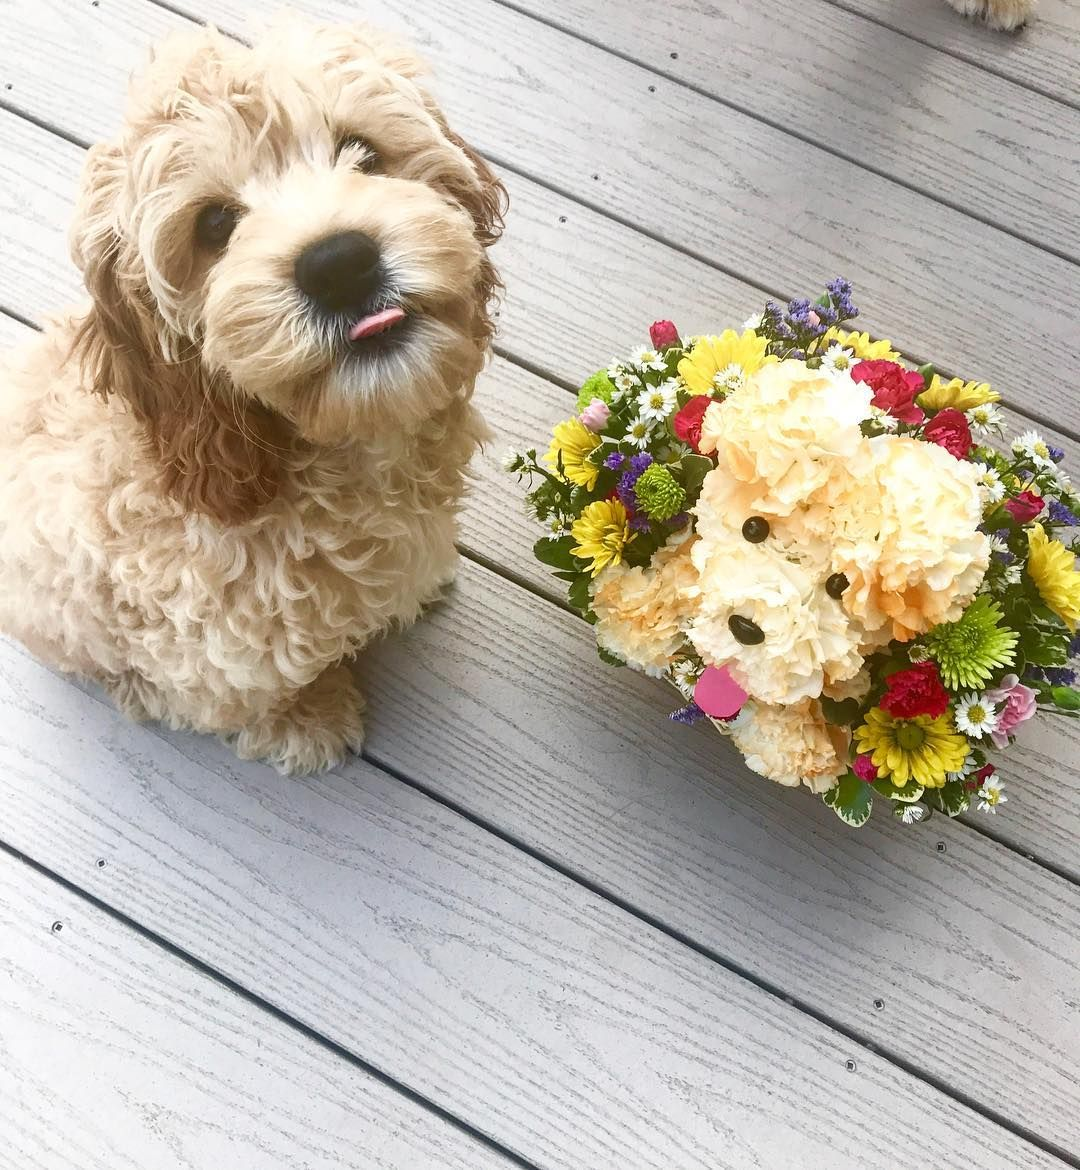 TonguesOut if you have an adogable flower twin! Buy